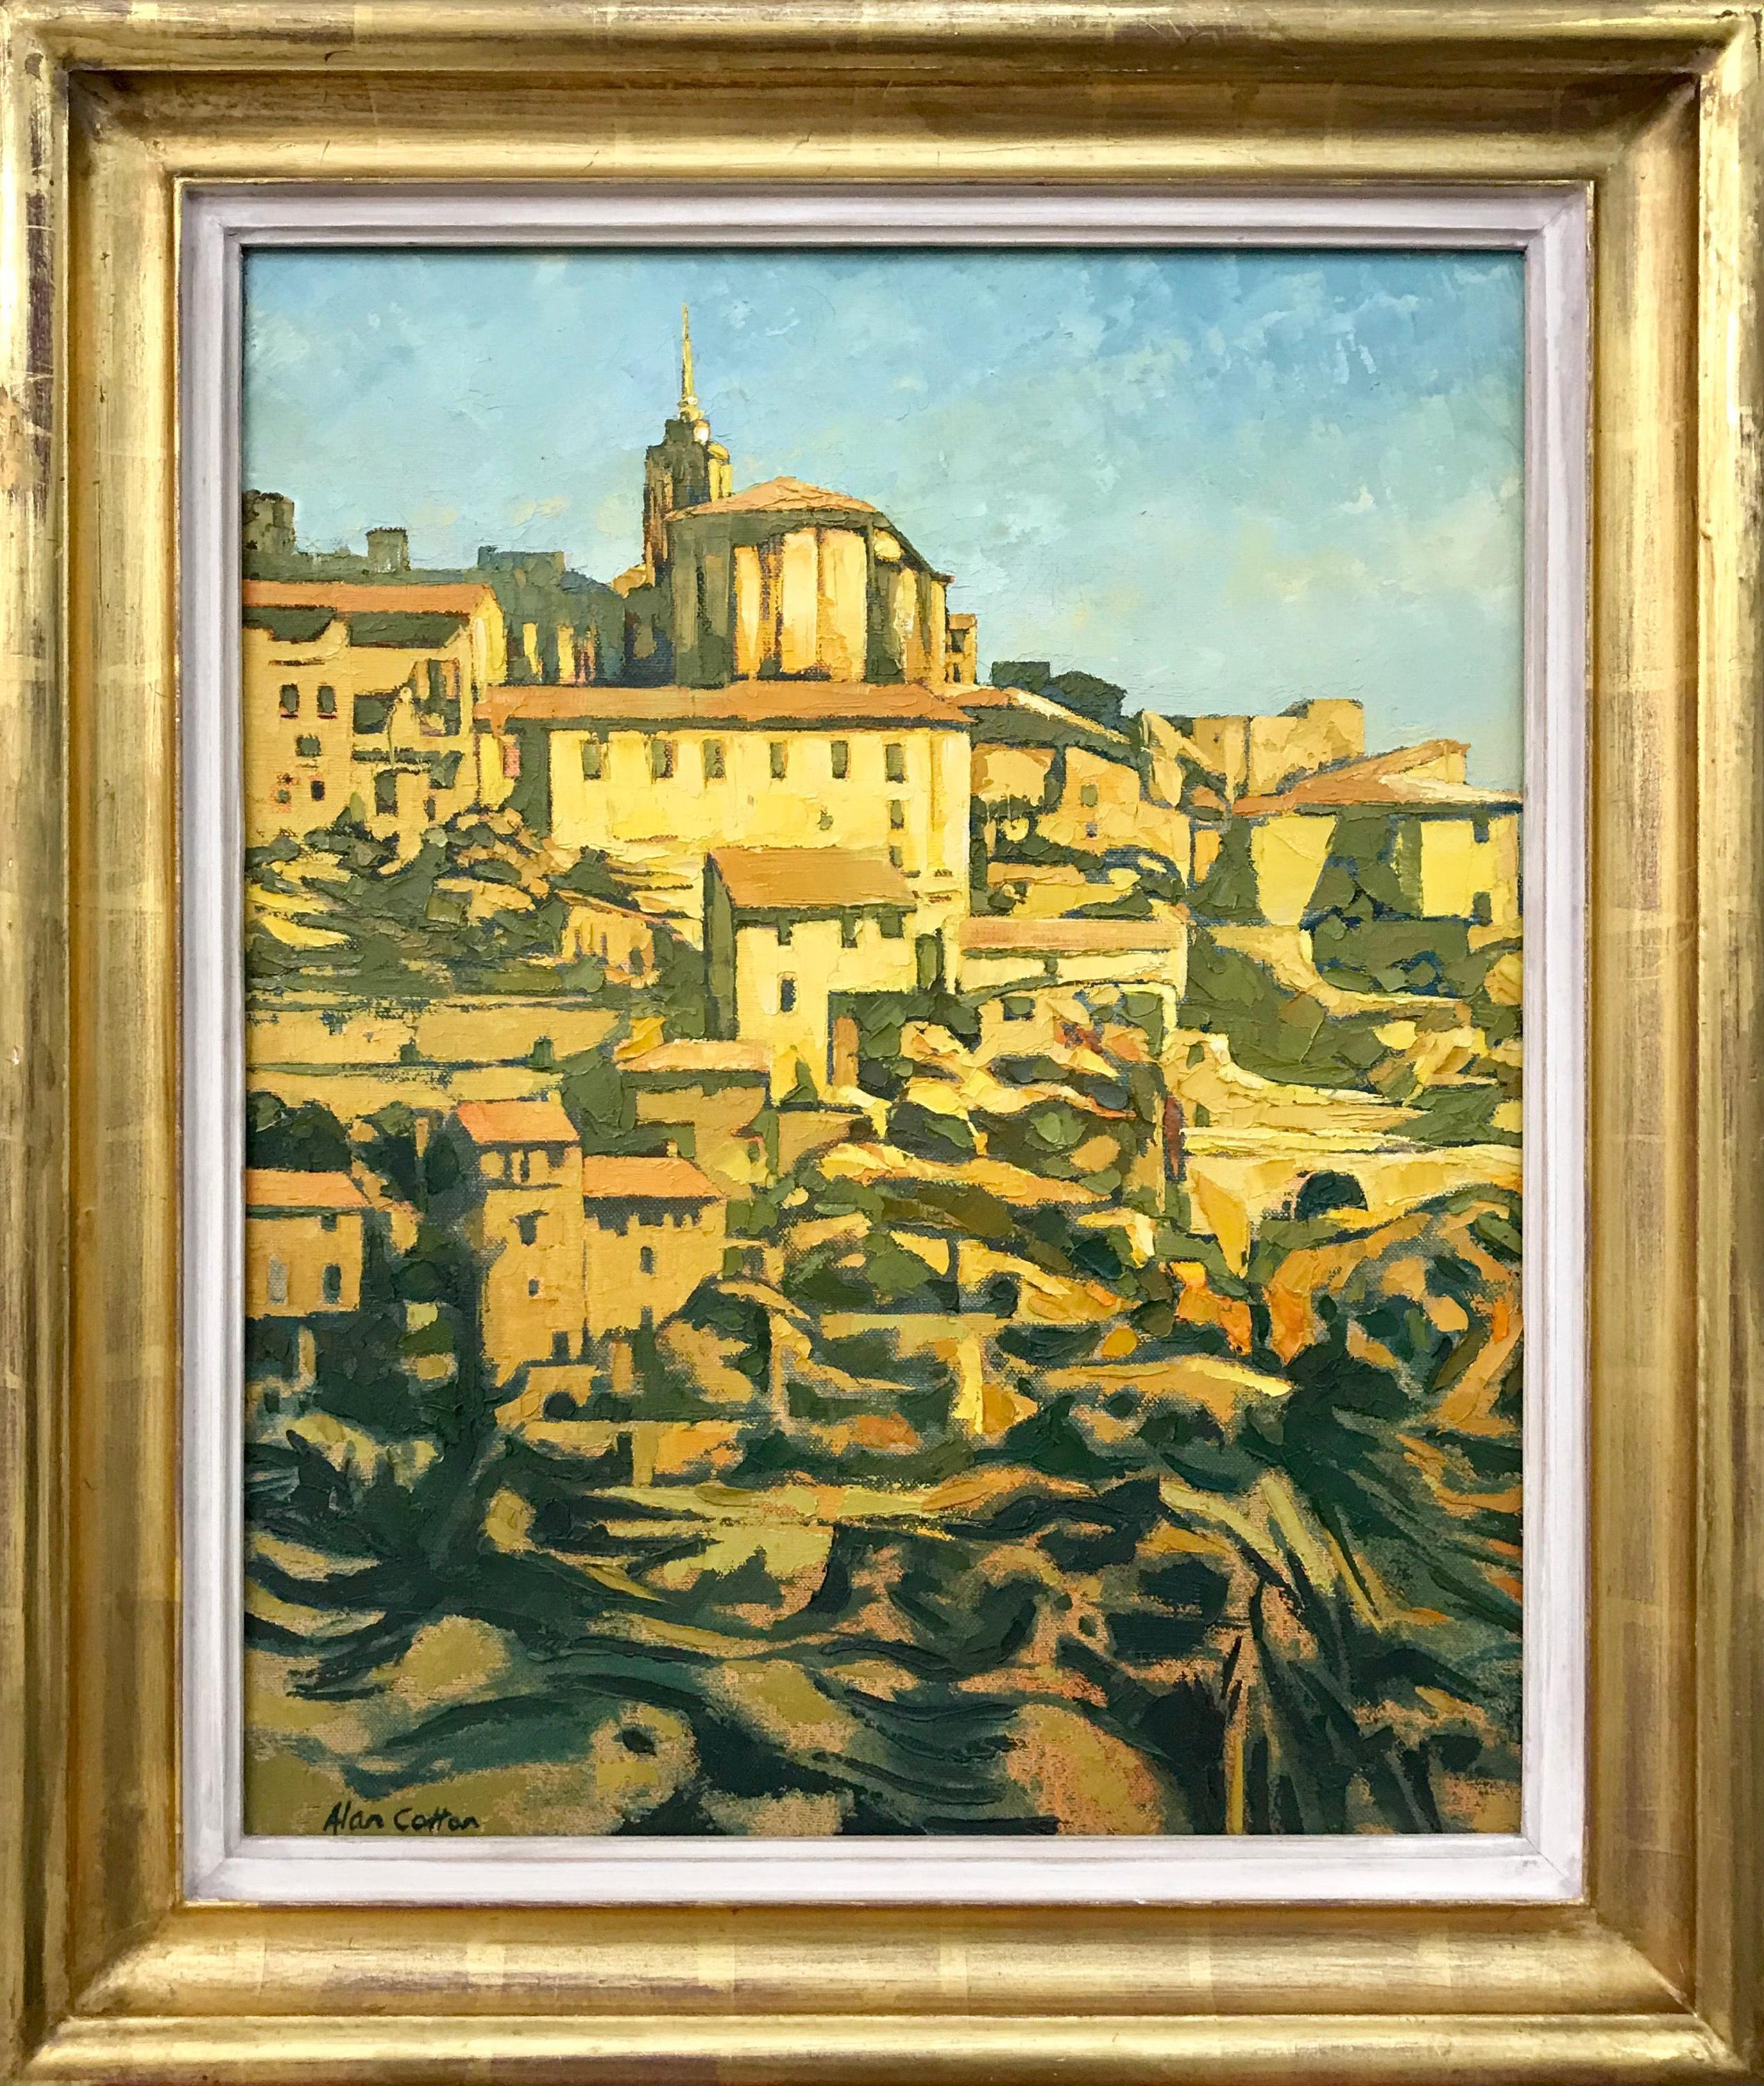 Impasto Oil Painting of Gordes Southern France Warm Sunlight by British Artist